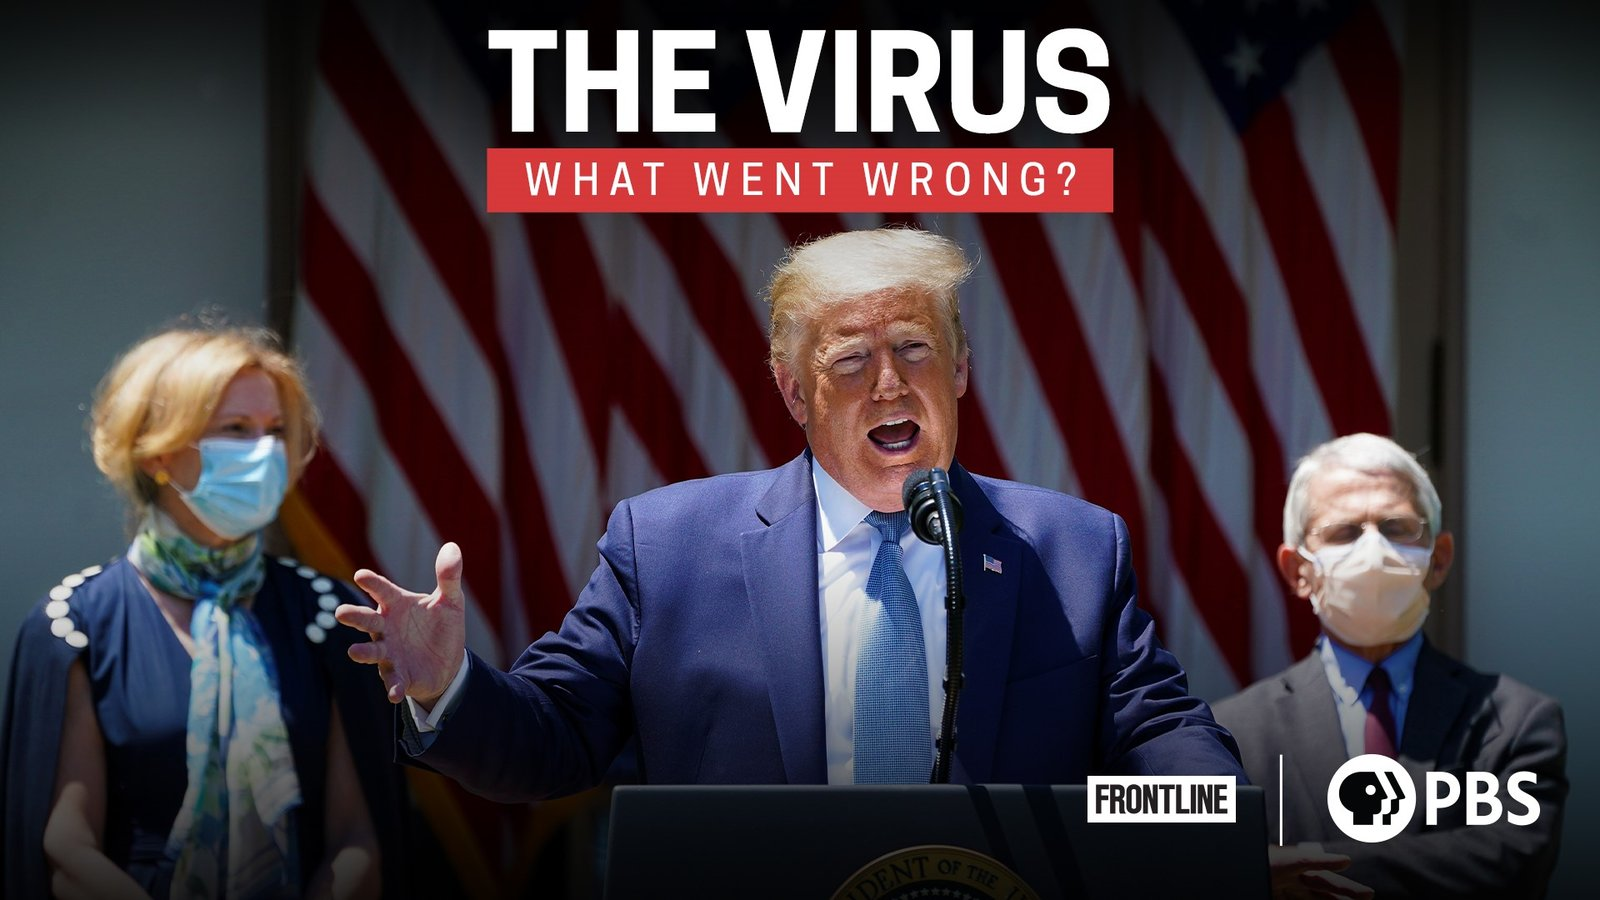 The Virus: What Went Wrong?